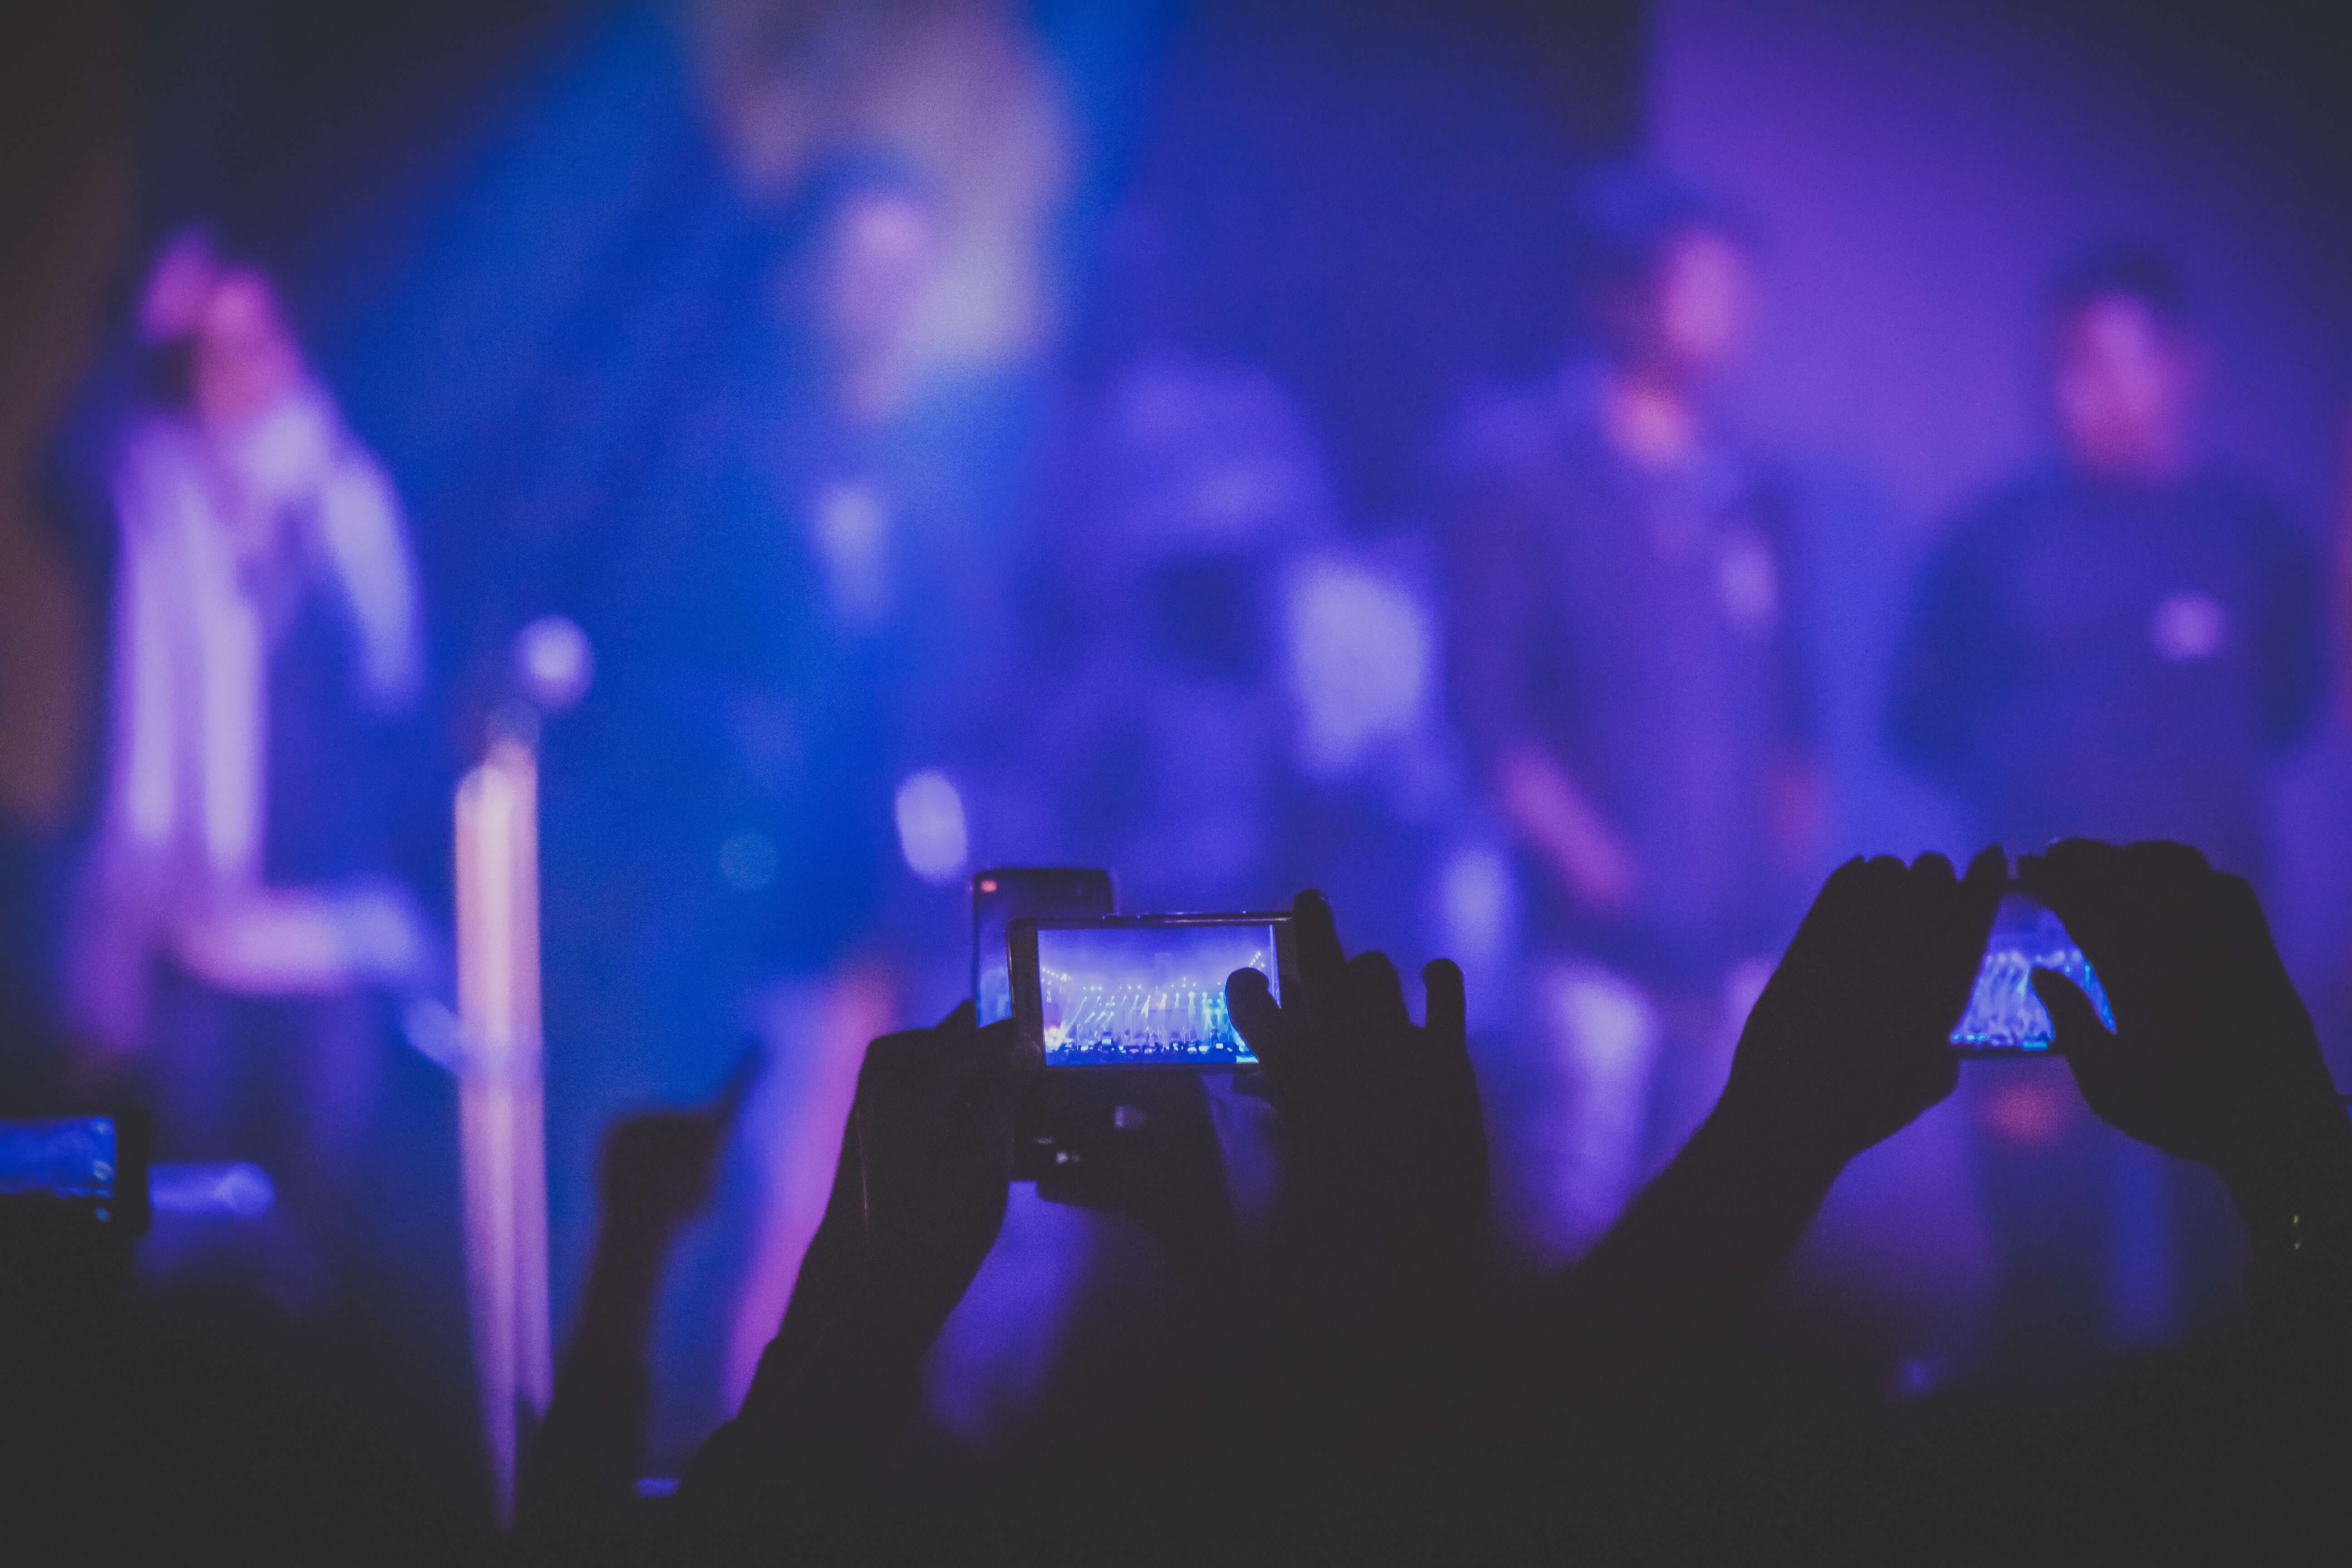 BEST PRACTICES FOR LIVE TWEETING EVENTS